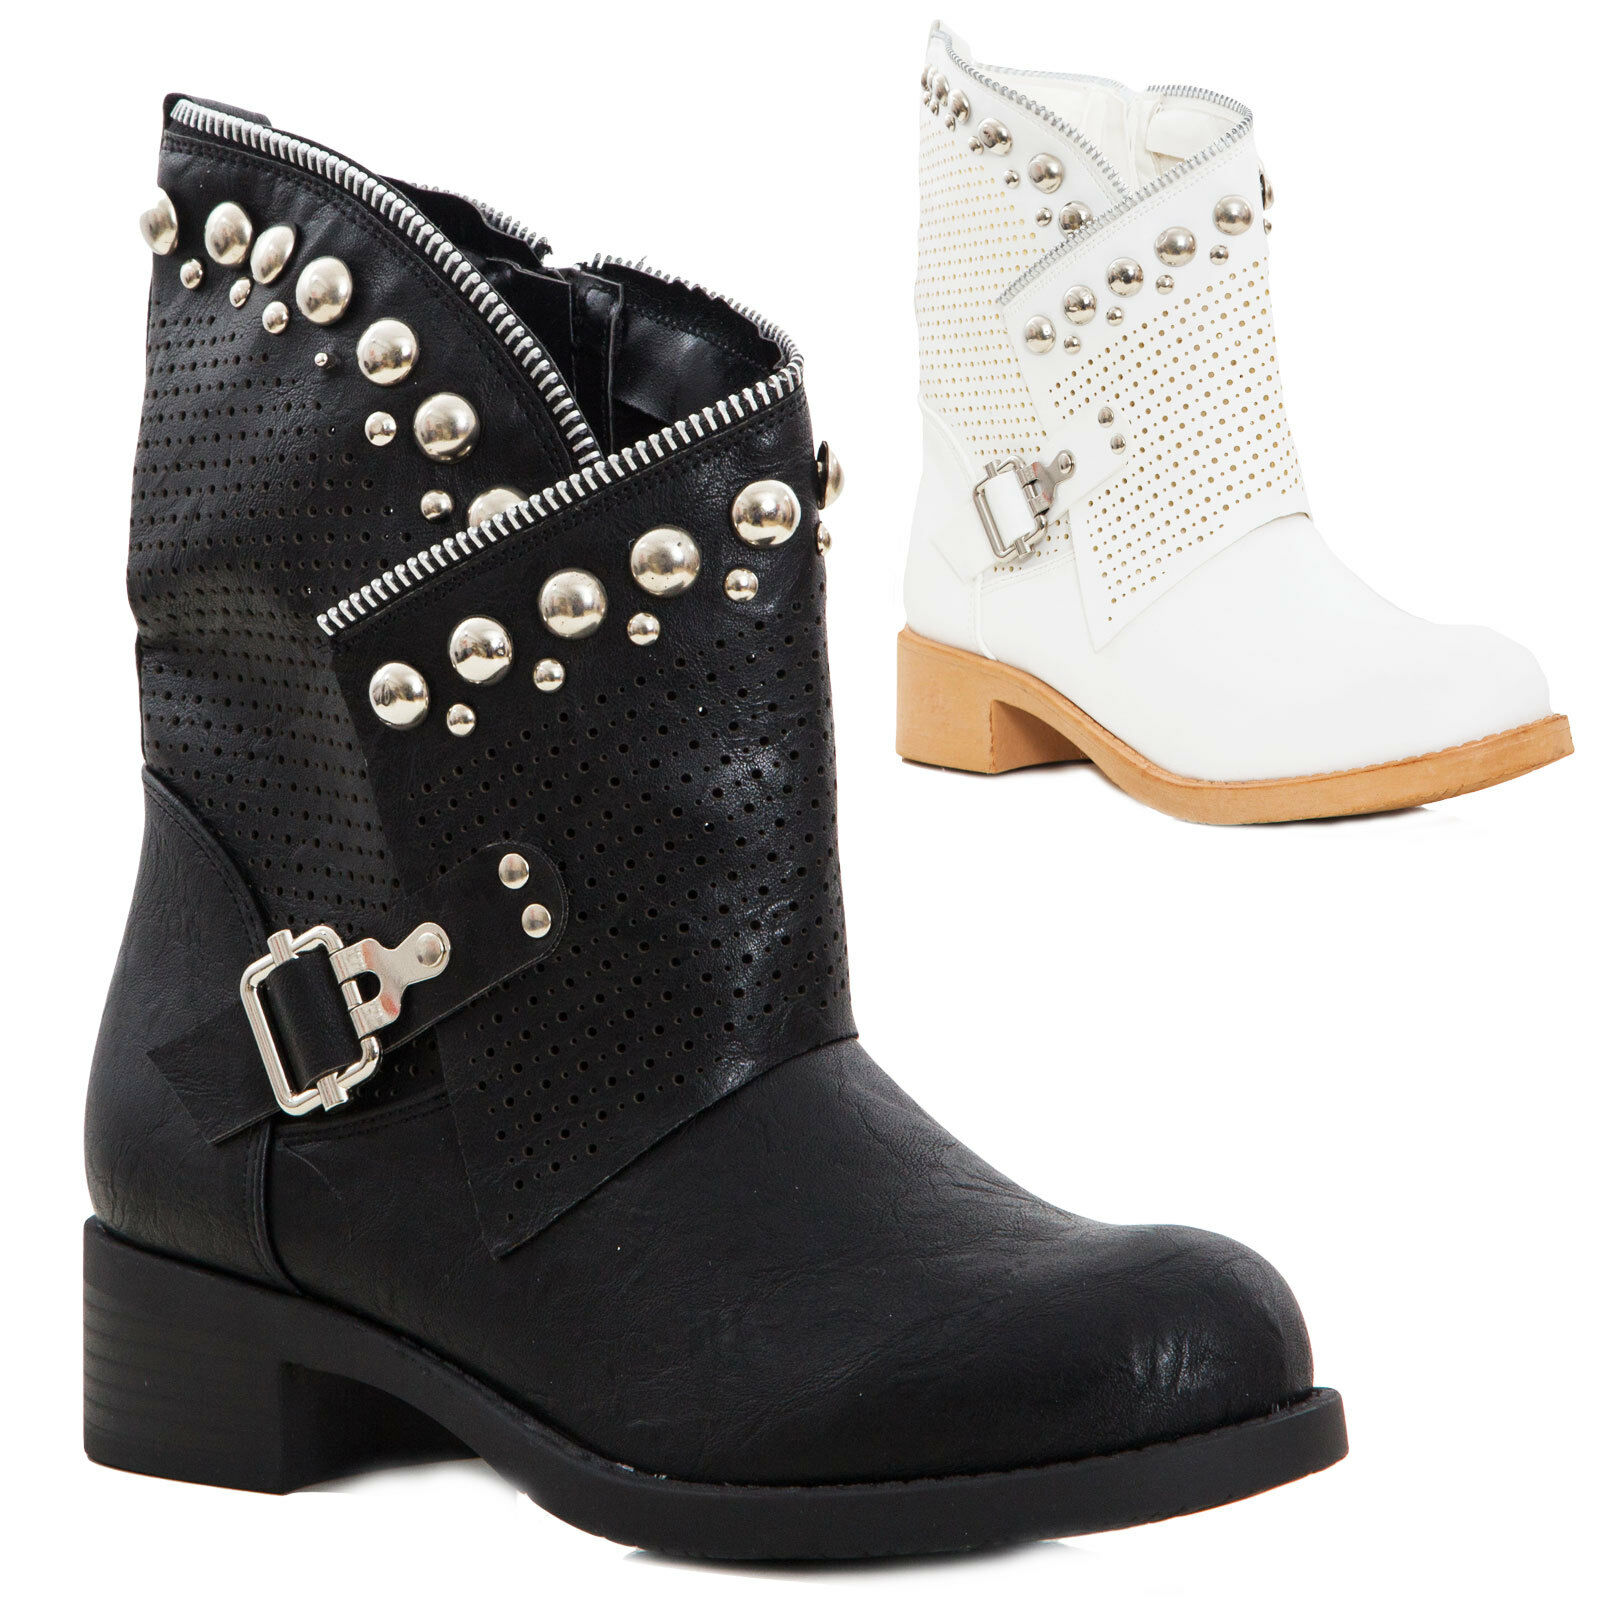 Women's Boots Low Biker Boots Motorcyclist Studs Perforated New K811